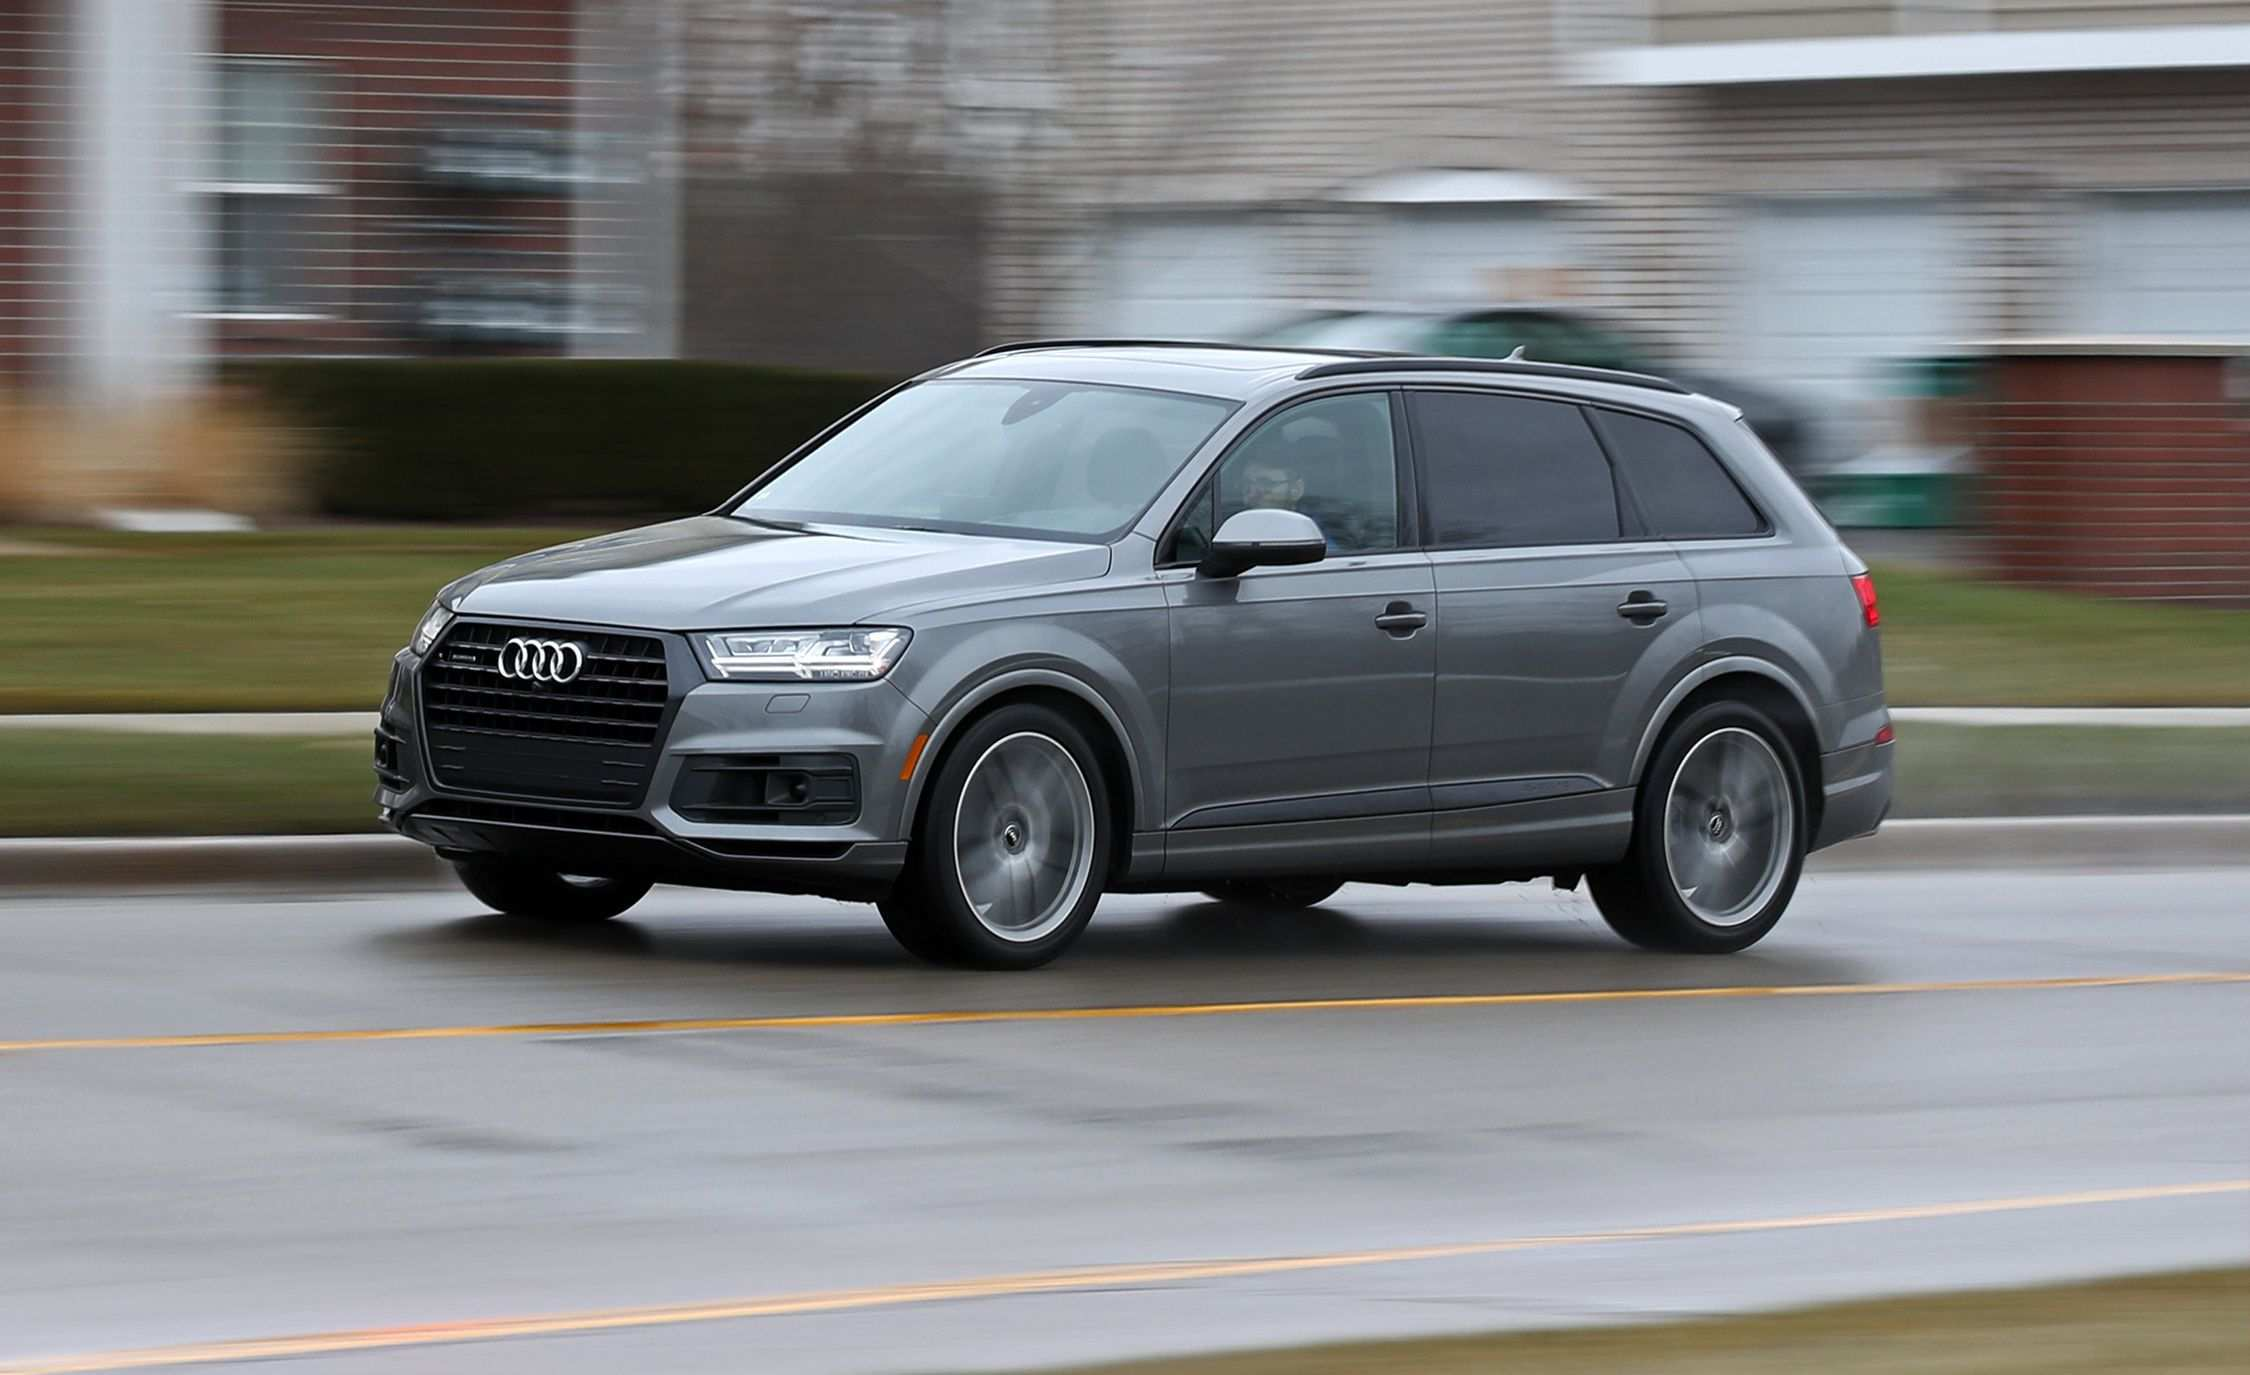 70 The Best 2020 Audi Q7 Changes Performance And New Engine